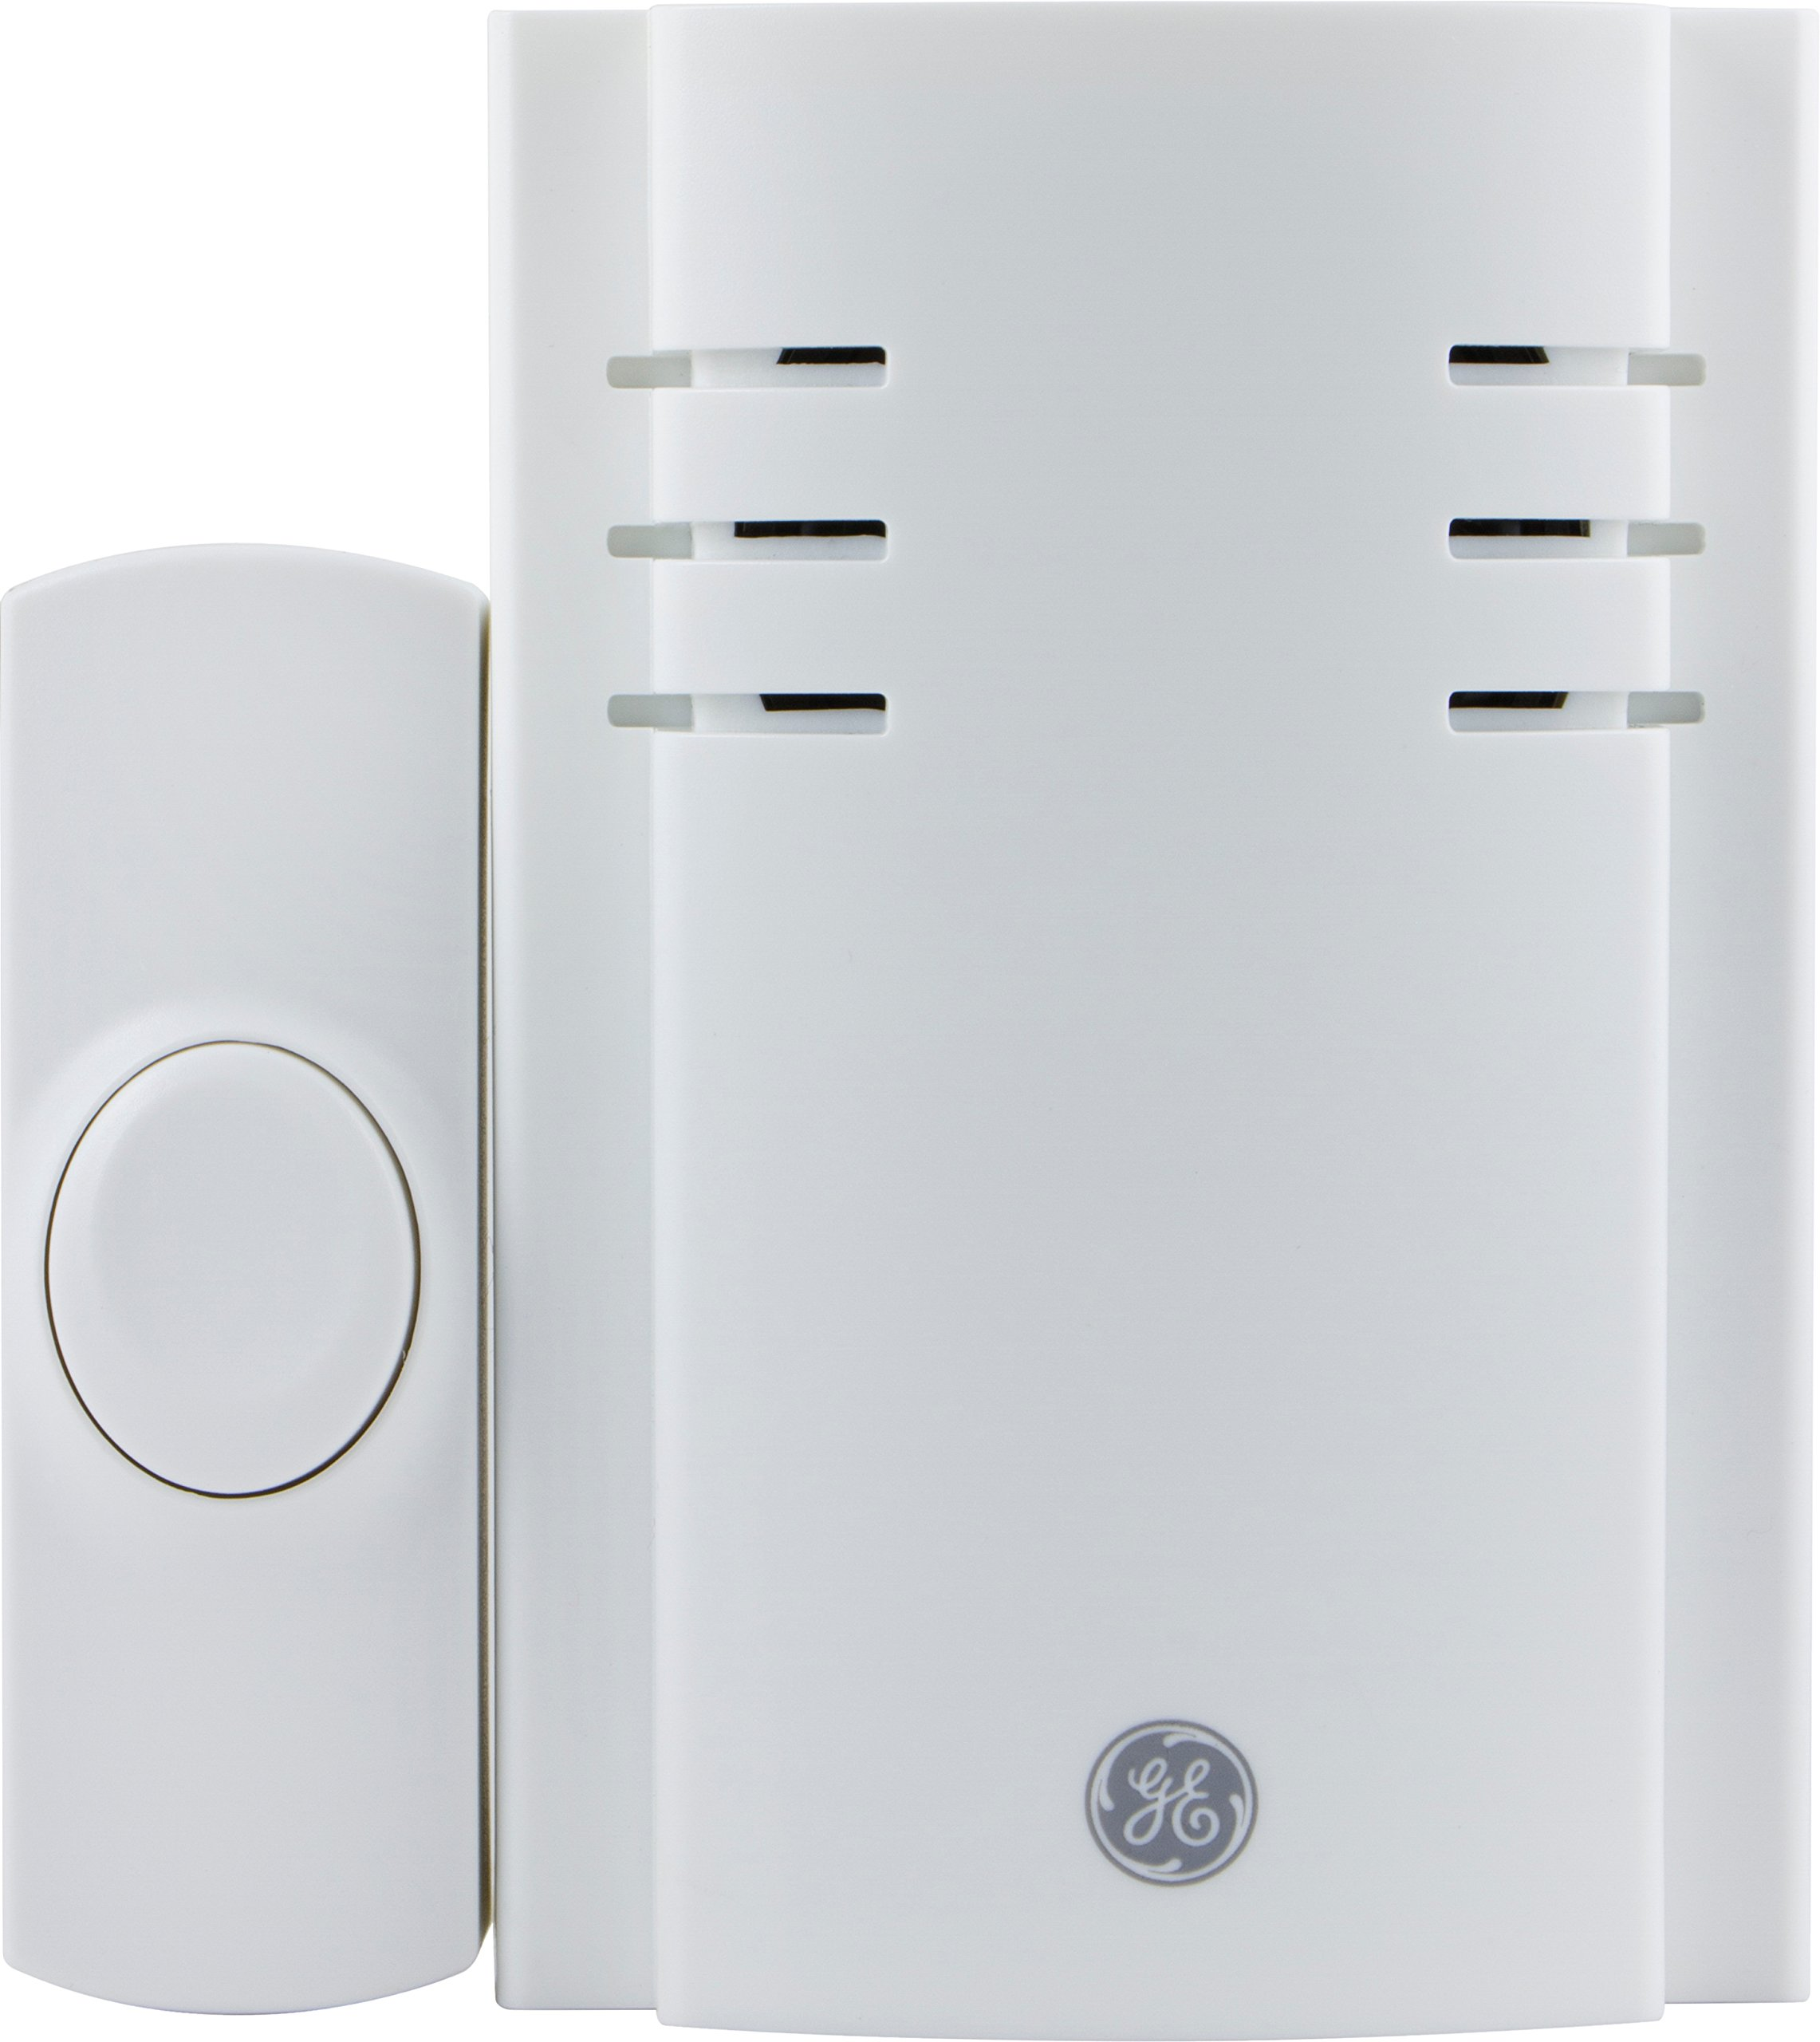 push in wireless chime chimes doors kits white button bell p with kit door plug db